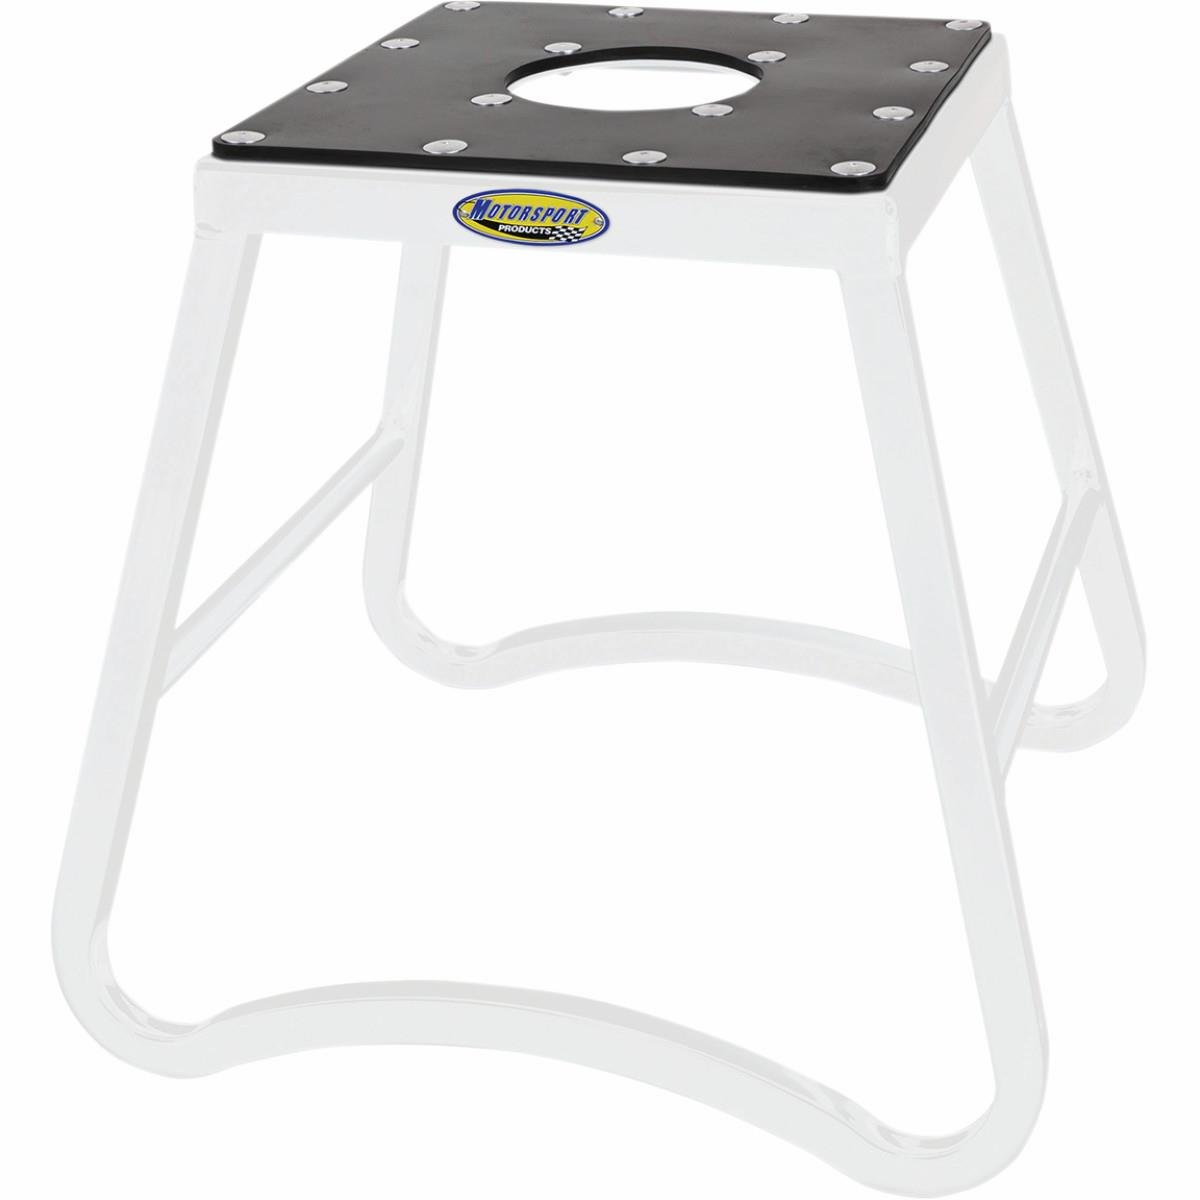 Motorsport Products SX1 Mini Stand White 964108